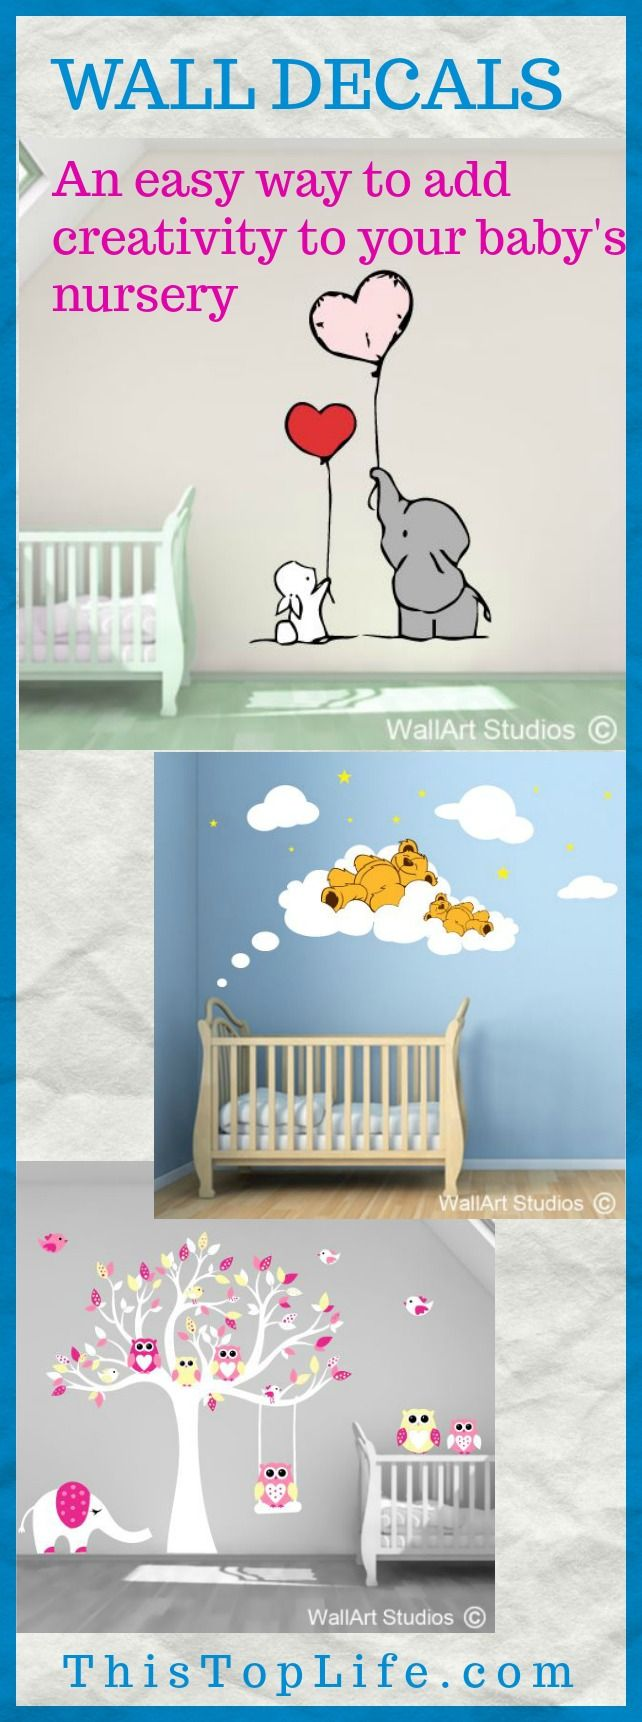 Wall decals are a fun way to add creativity to your baby's nursery!